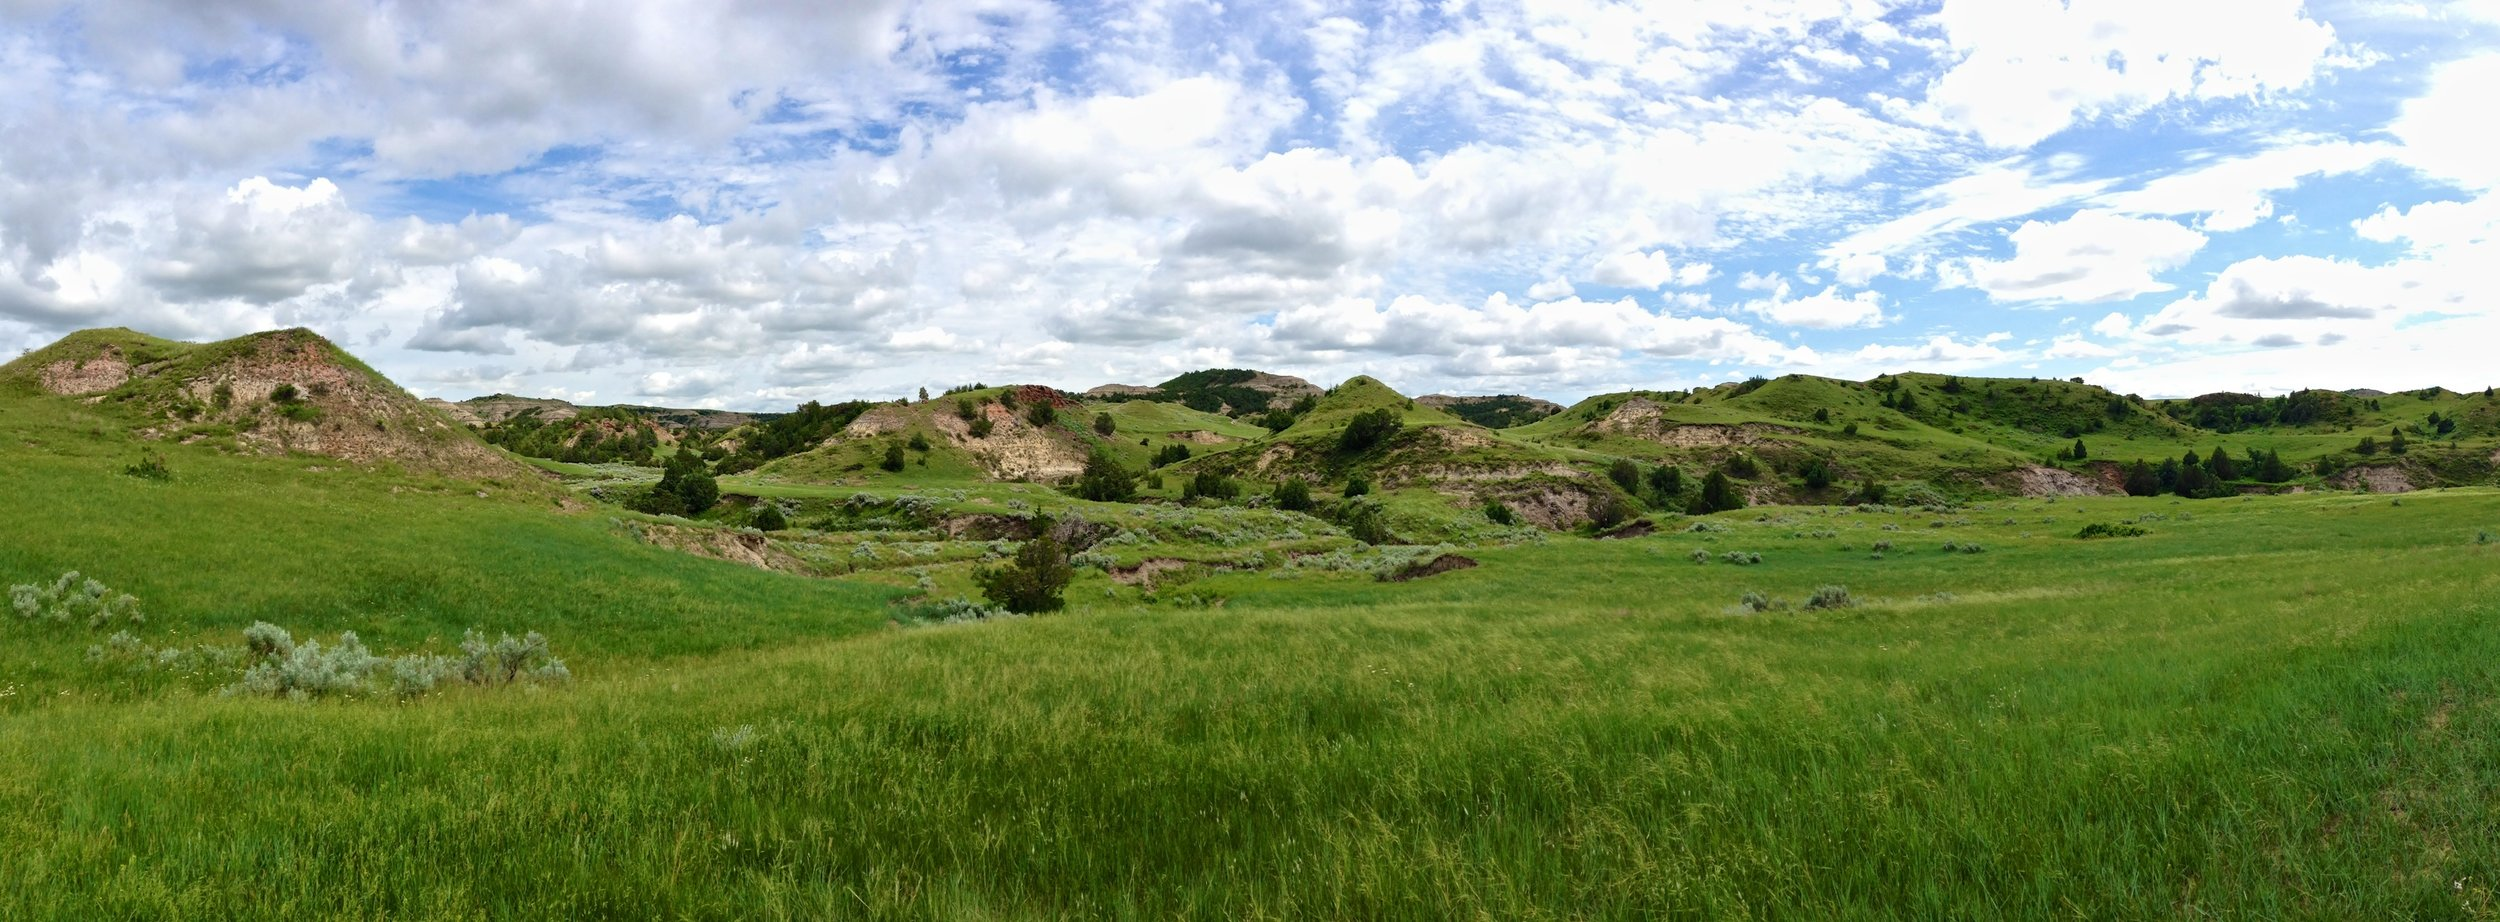 North Dakotan Badlands in the Theodore Roosevelt National Park